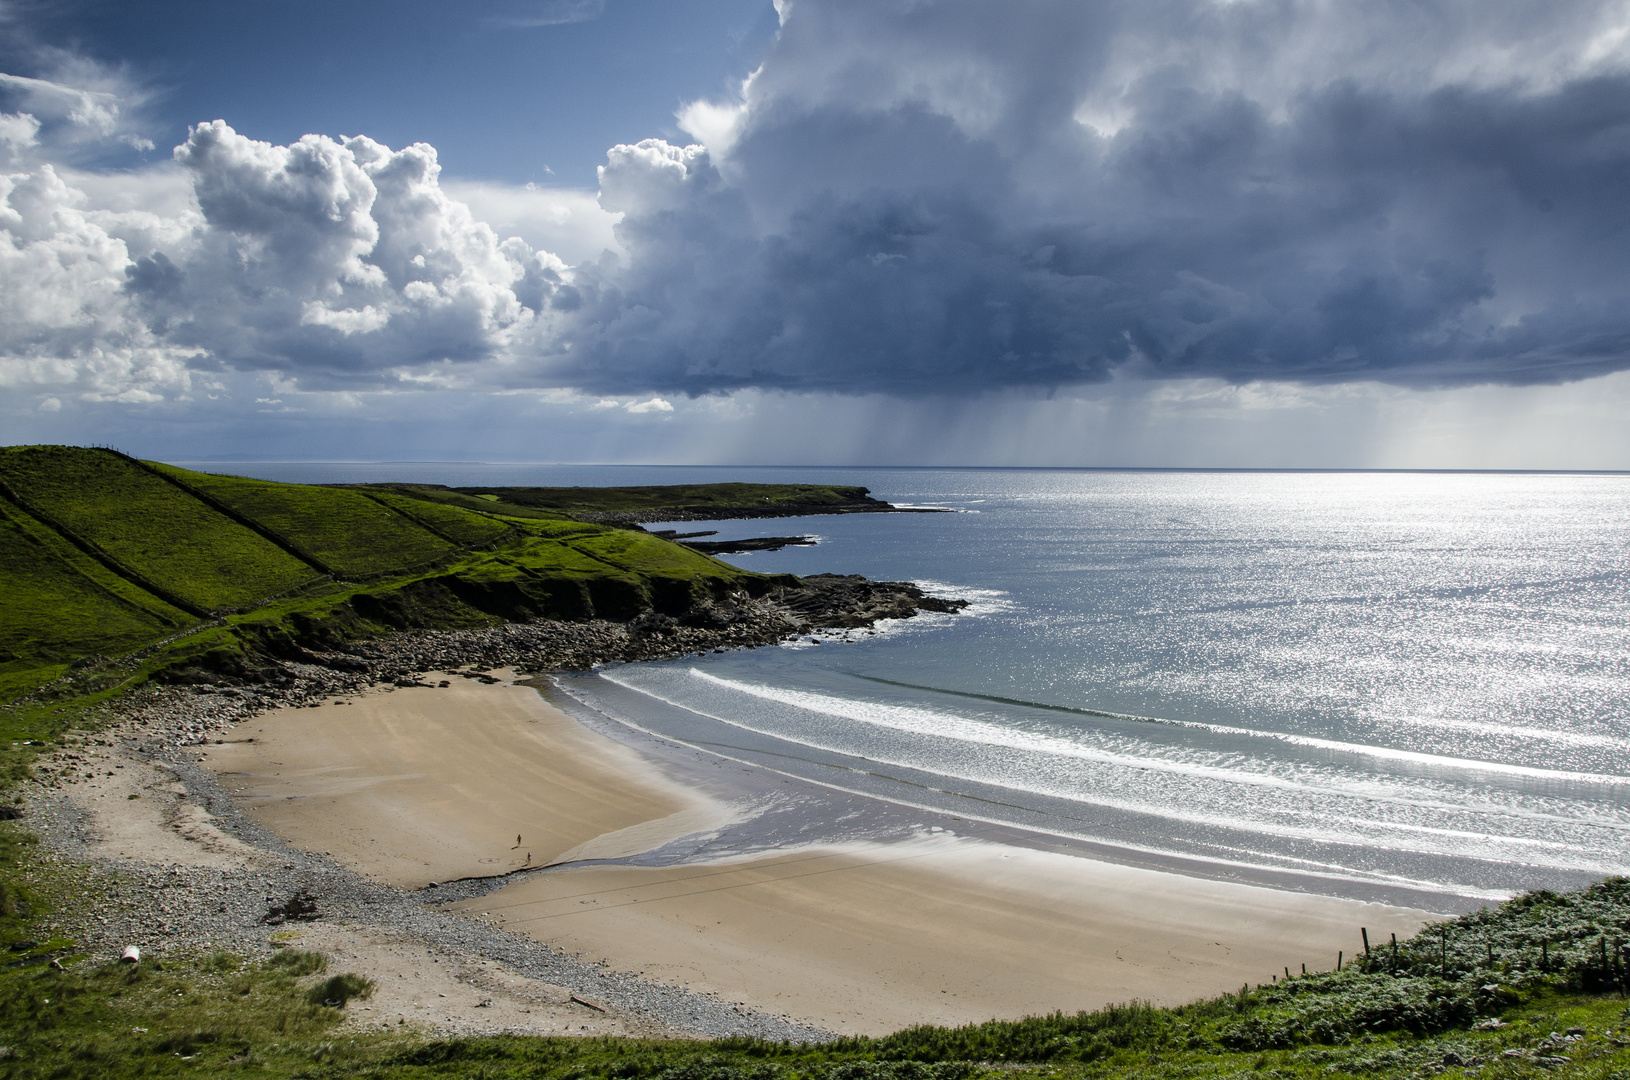 Coastal Road to Kilcare - Donegal